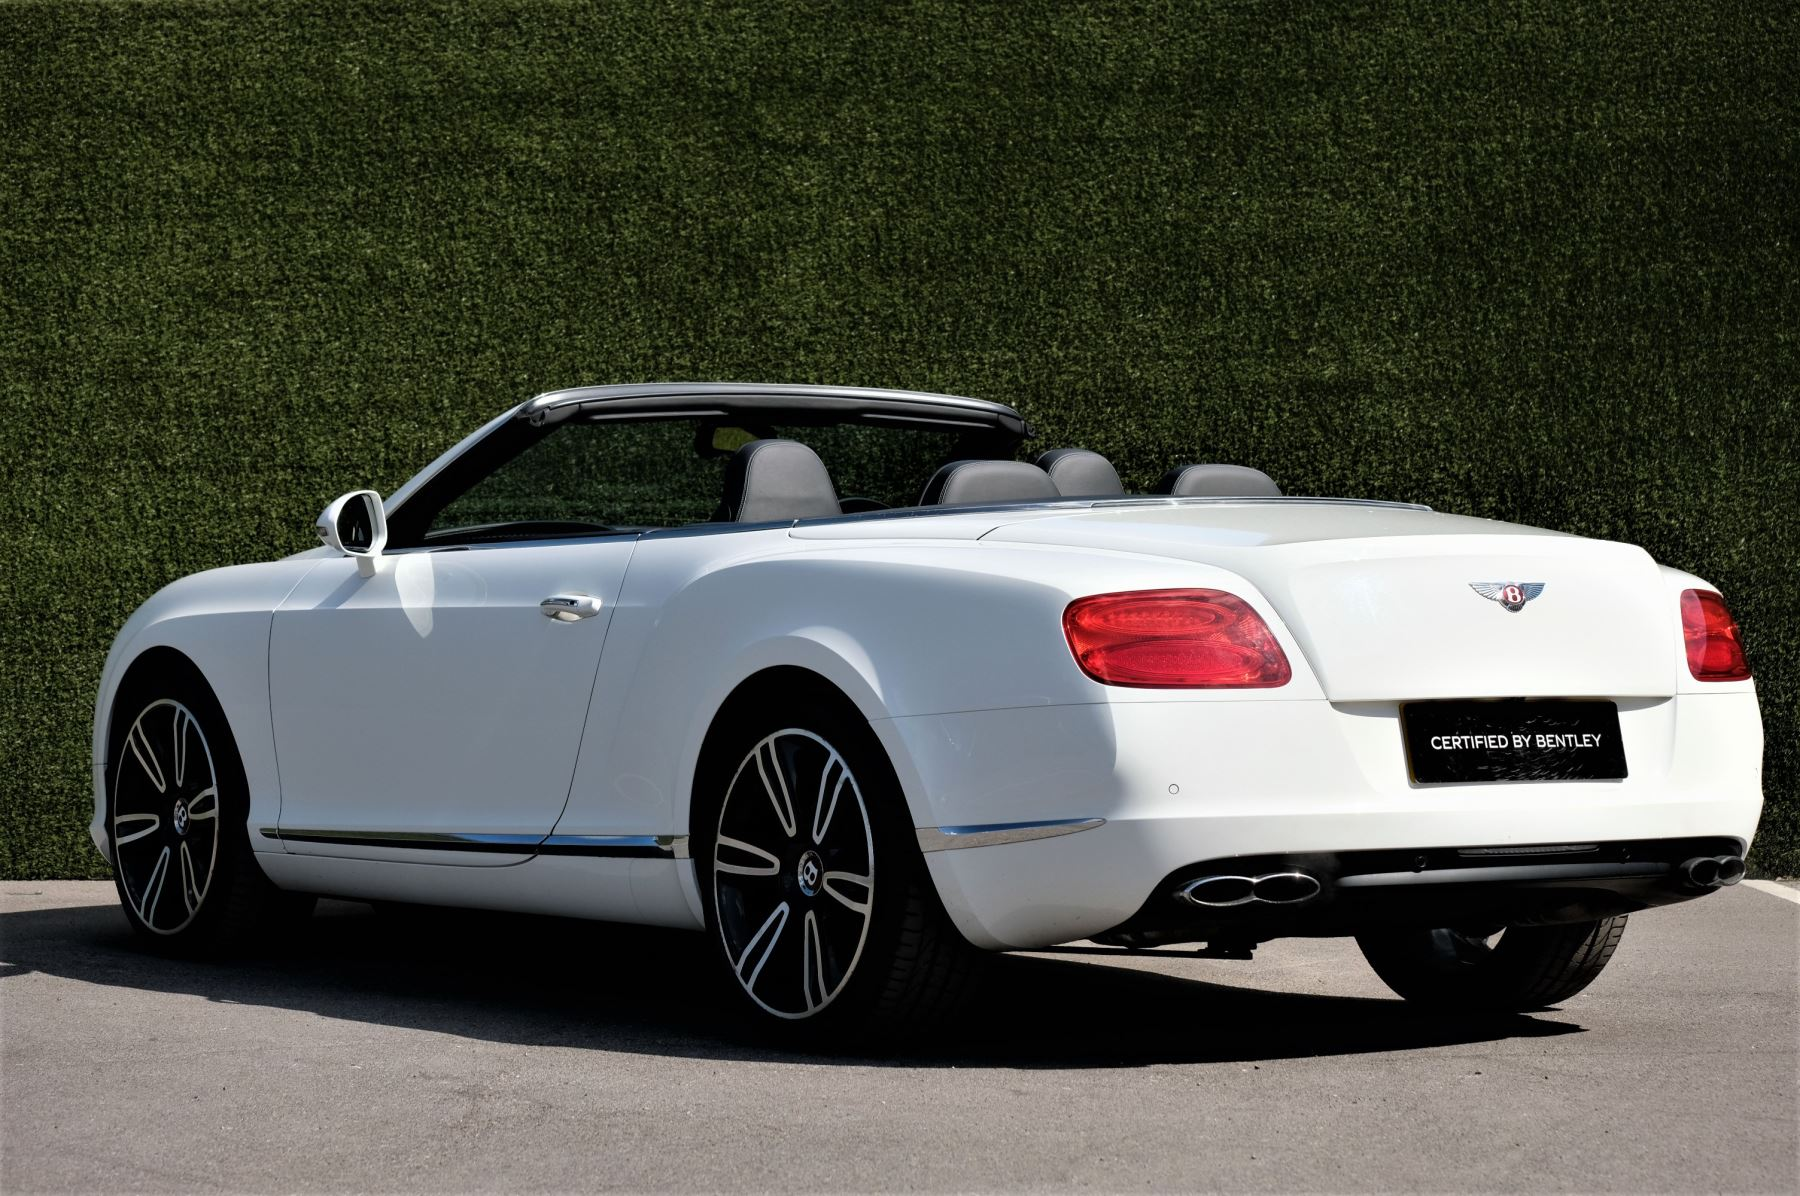 Bentley Continental GTC 4.0 V8 - Sports and Colour Specification image 5